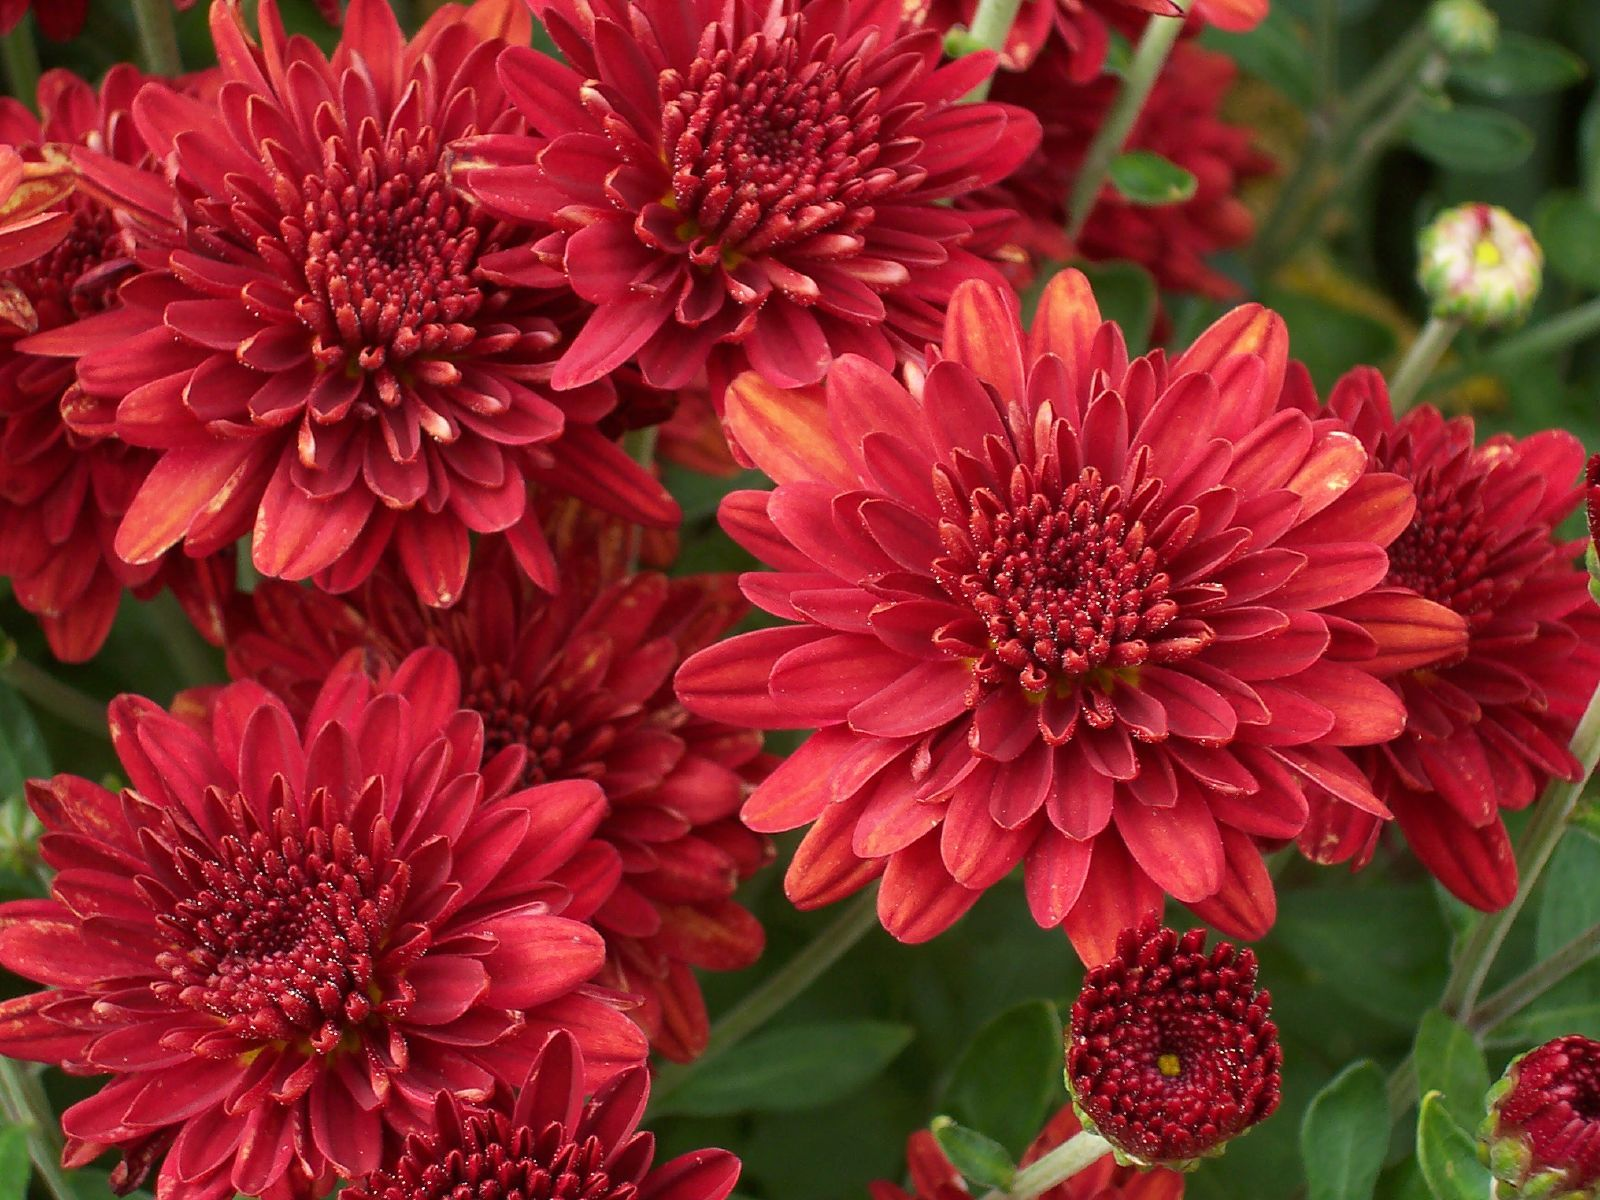 Red mums plants gardens and flowers flowers izmirmasajfo Gallery